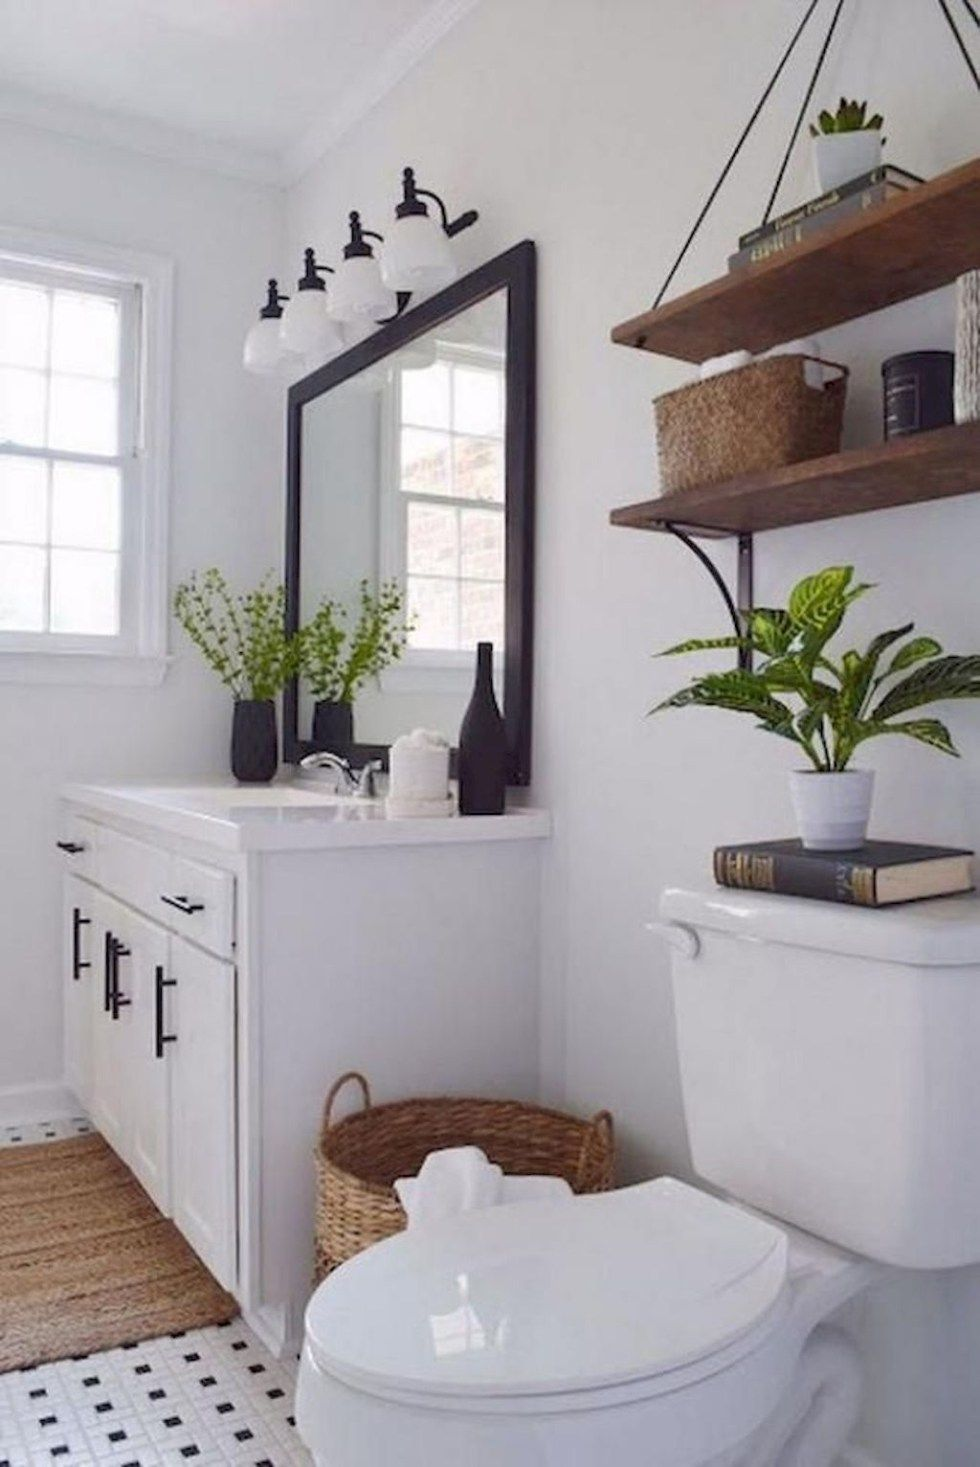 40 cool small master bathroom remodel ideas white on bathroom renovation ideas white id=61176